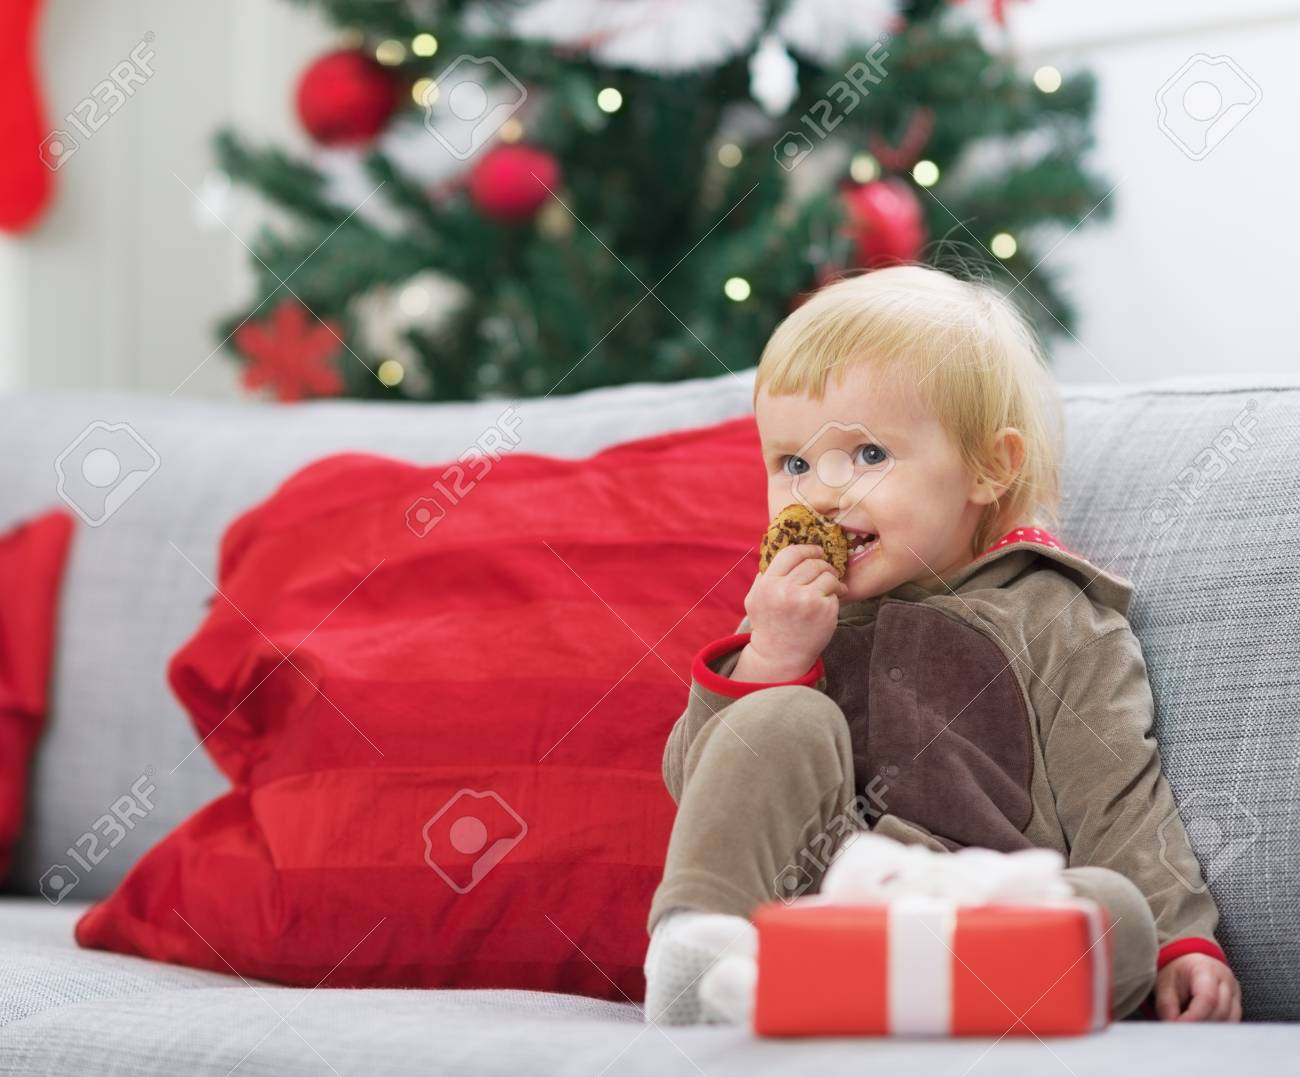 Happy baby in christmas costume eating cookie Stock Photo - 21353199